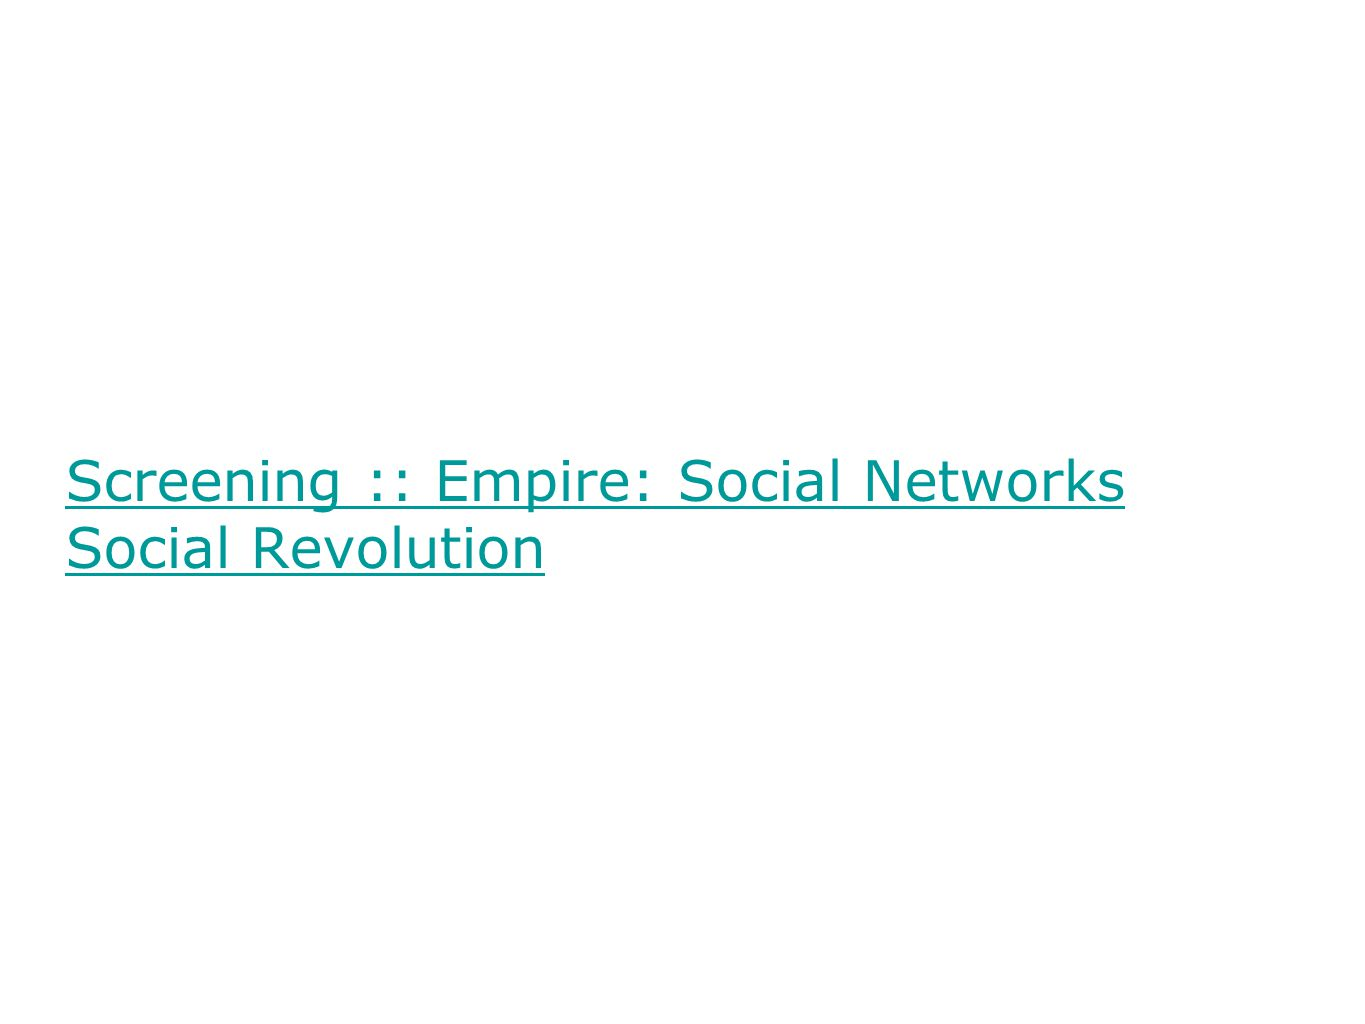 Screening :: Empire: Social Networks Social Revolution